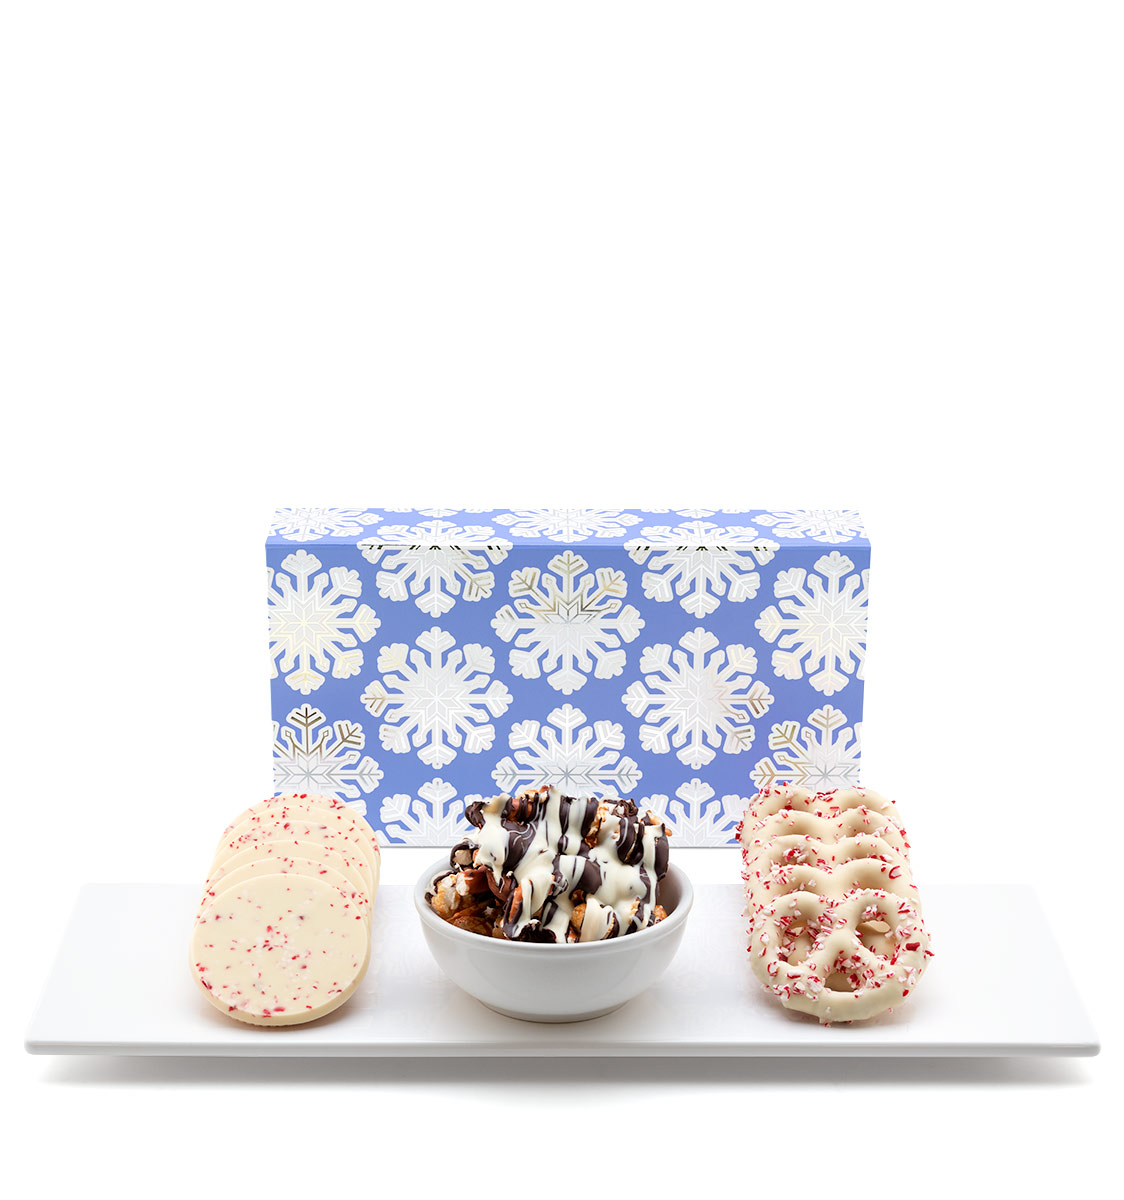 ready-gift-chocolate-SHX230766T-shimmering-snowflake-peppermint-popcorn-pretzels-bark-luxury-tasting-box-featured